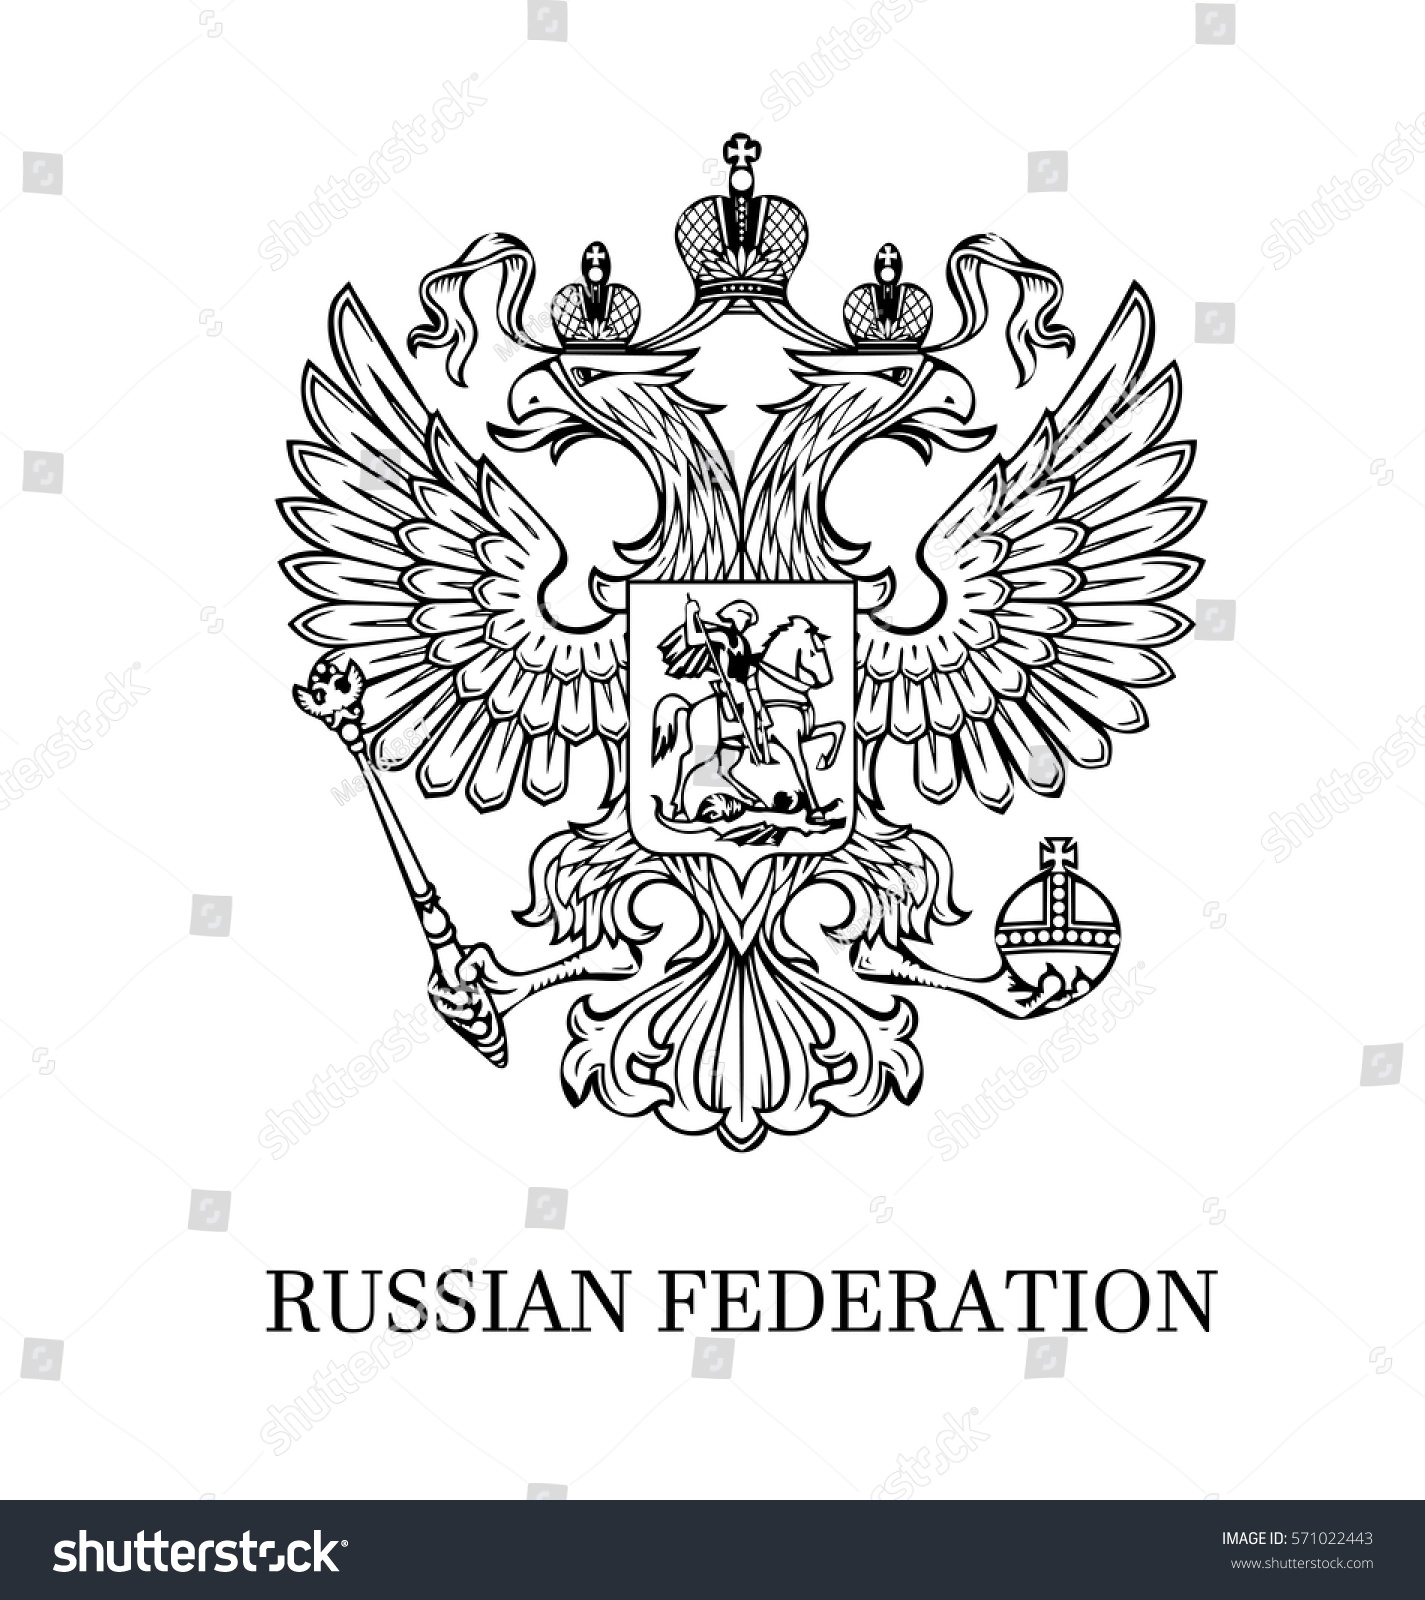 The Russian Federation With